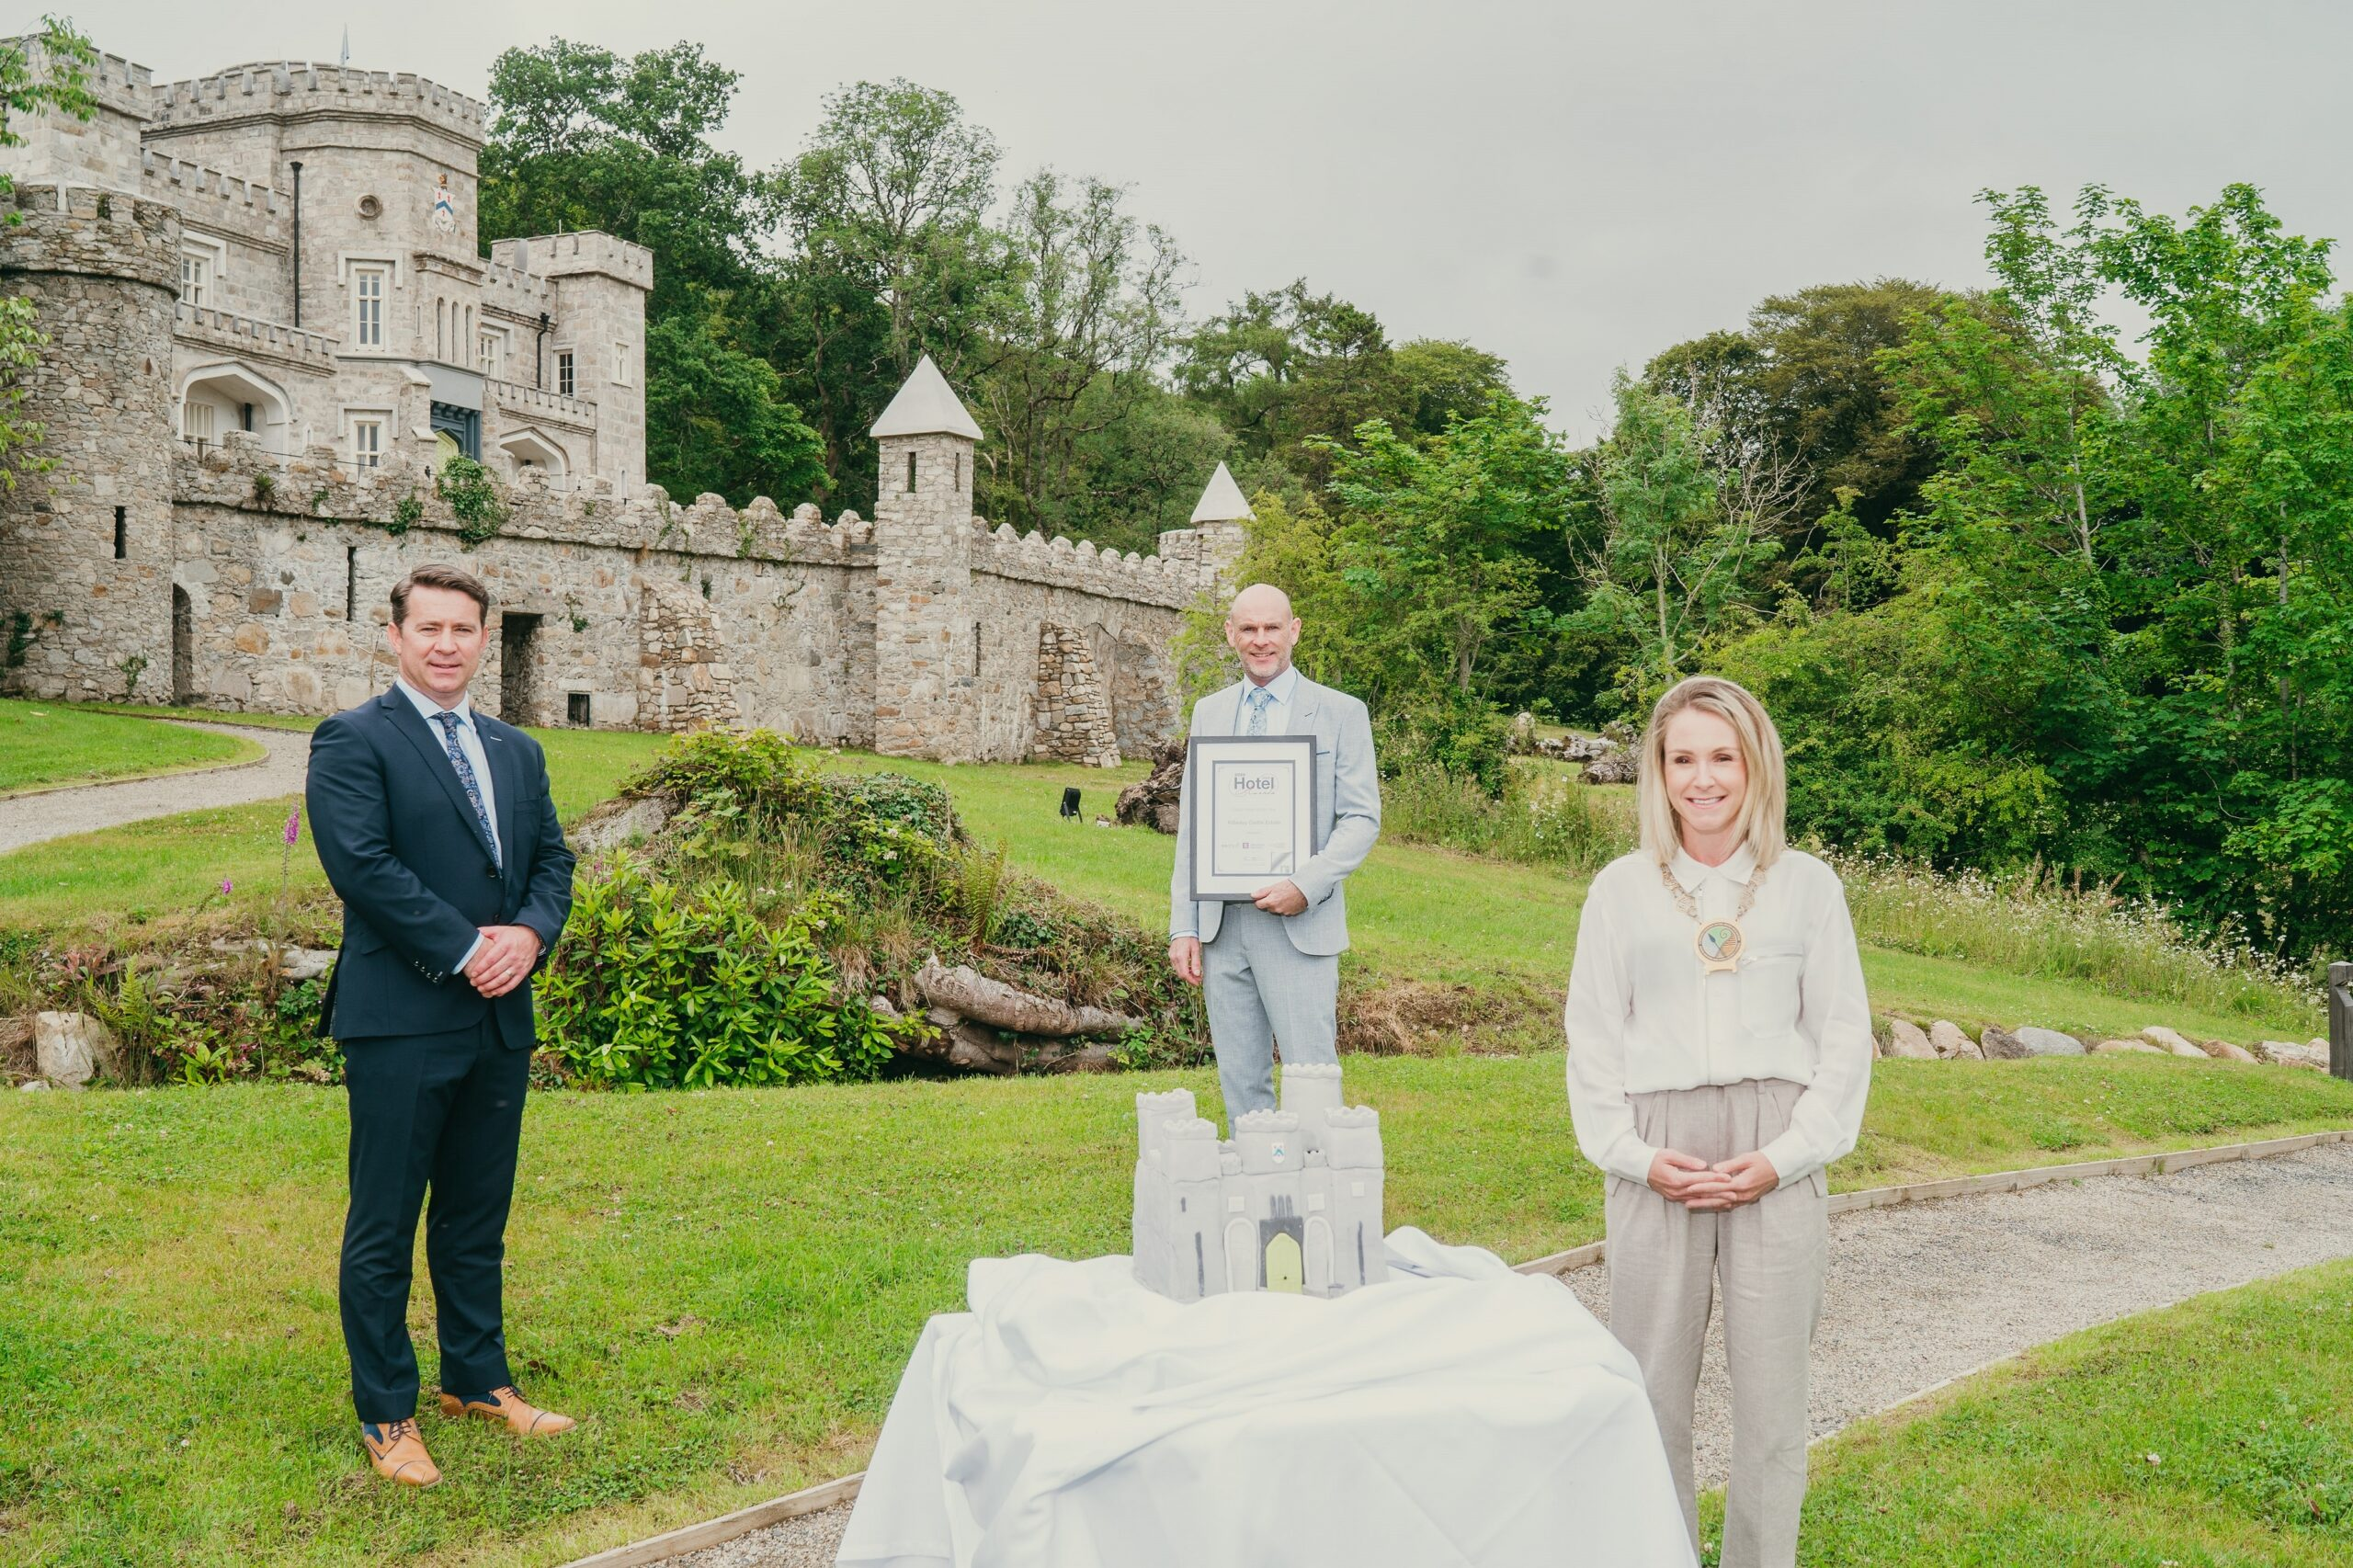 Killeavy Castle Estate Newry News - Newry Times - Breaking news Newry, Newry Newspaper, Latest News Newry, Newry headlines